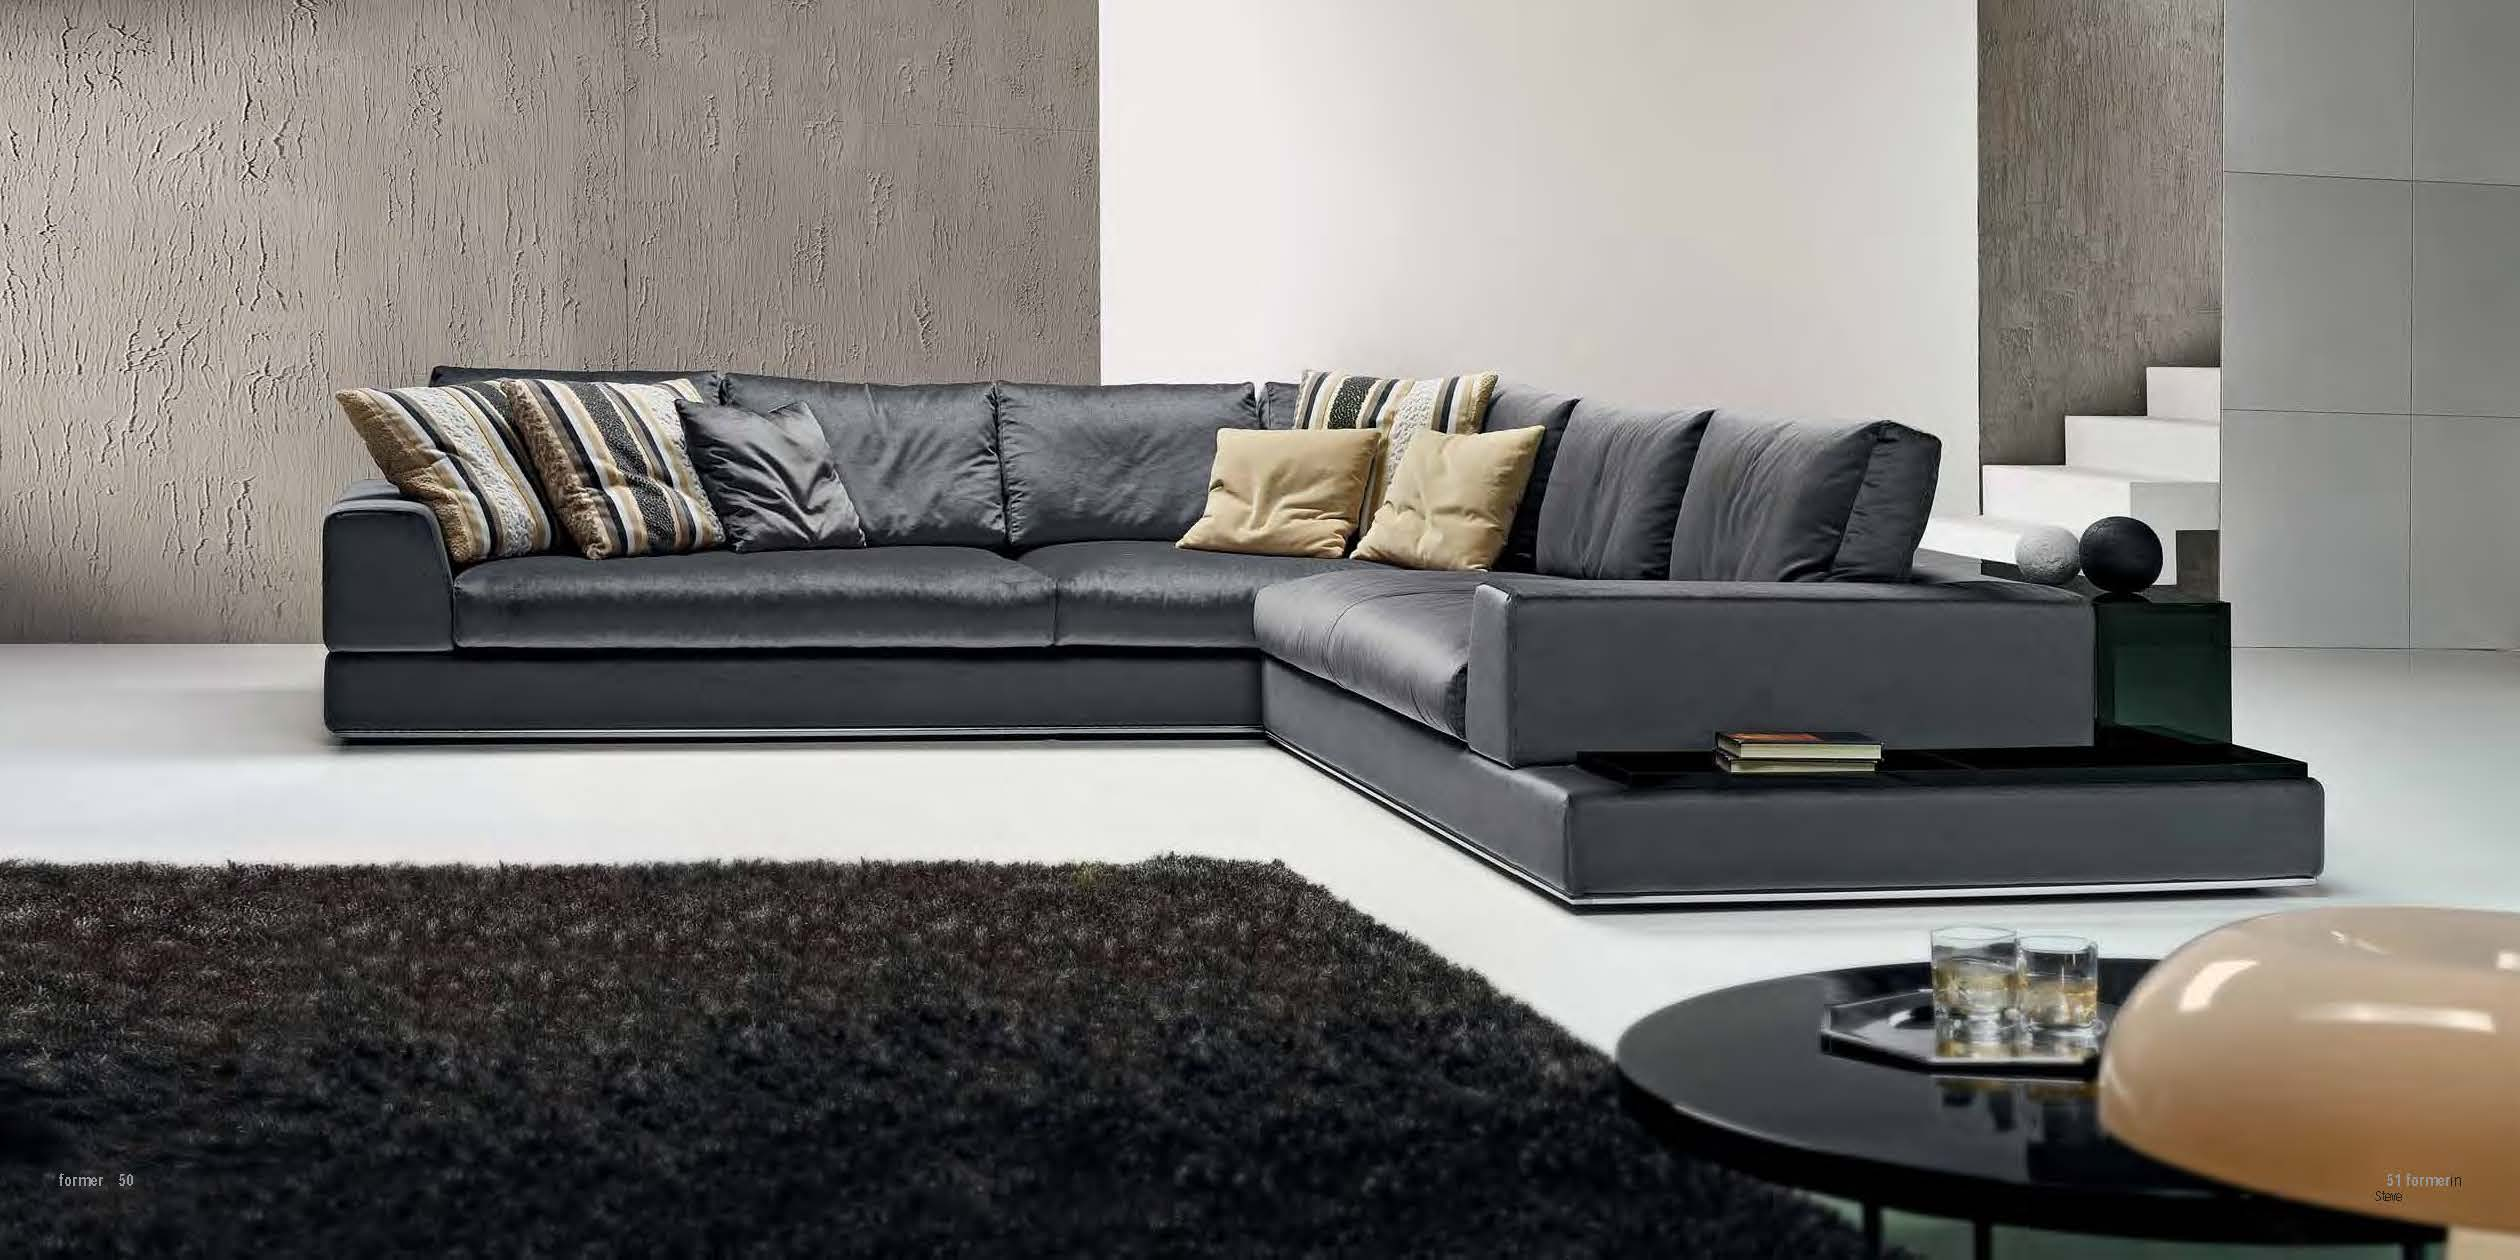 Brands Formerin Modern Living Room, Italy My Way